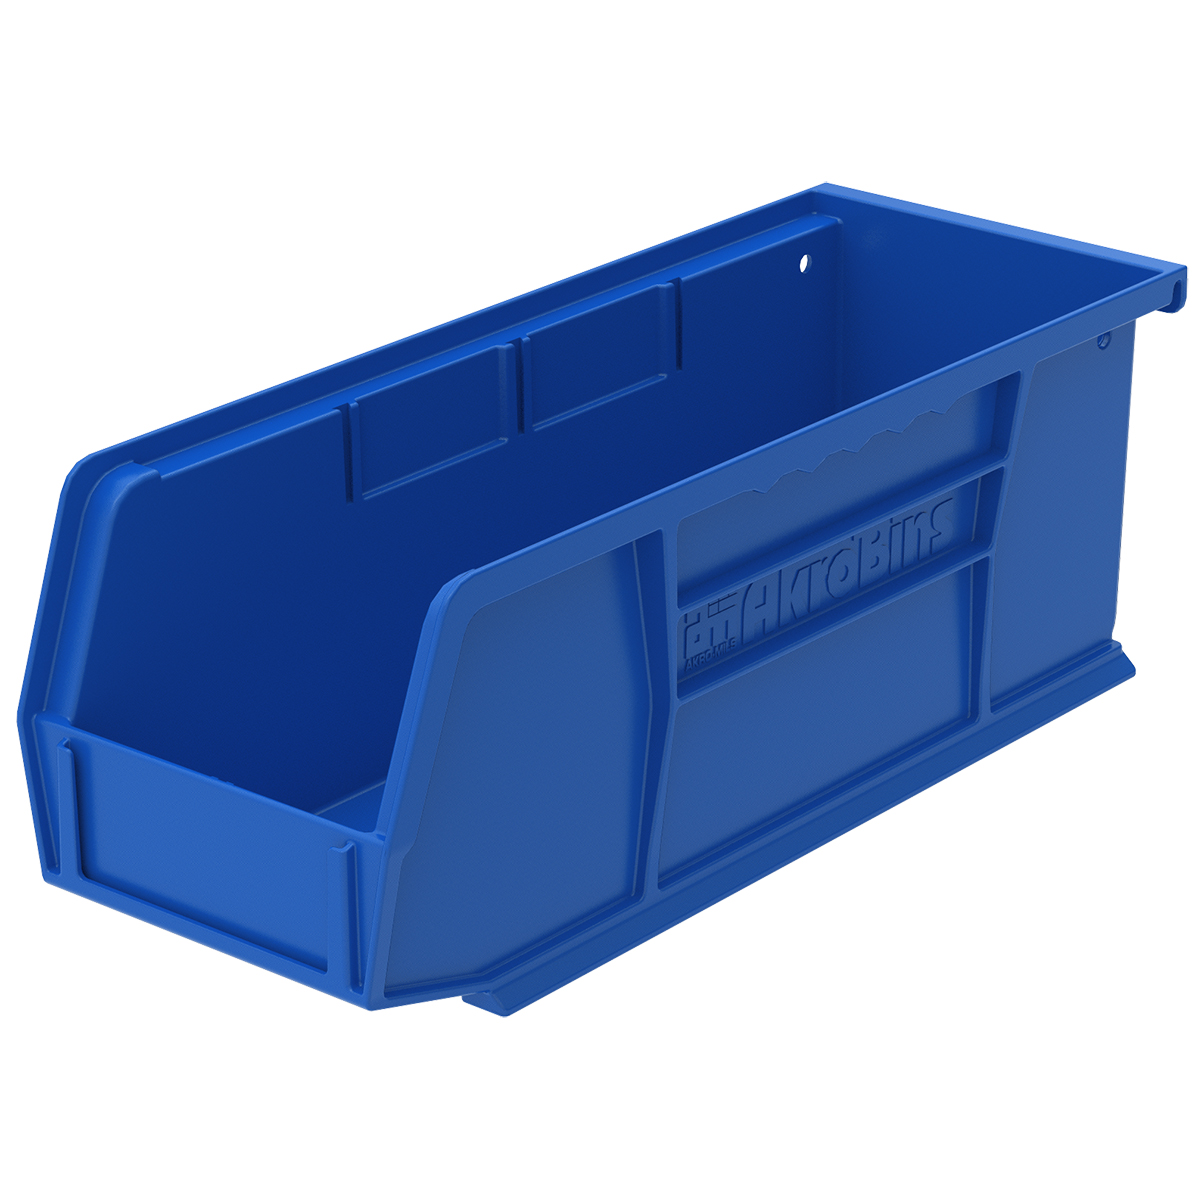 AkroBin 10-7/8 x 4-1/8 x 4, Blue (30224BLUE).  This item sold in carton quantities of 12.